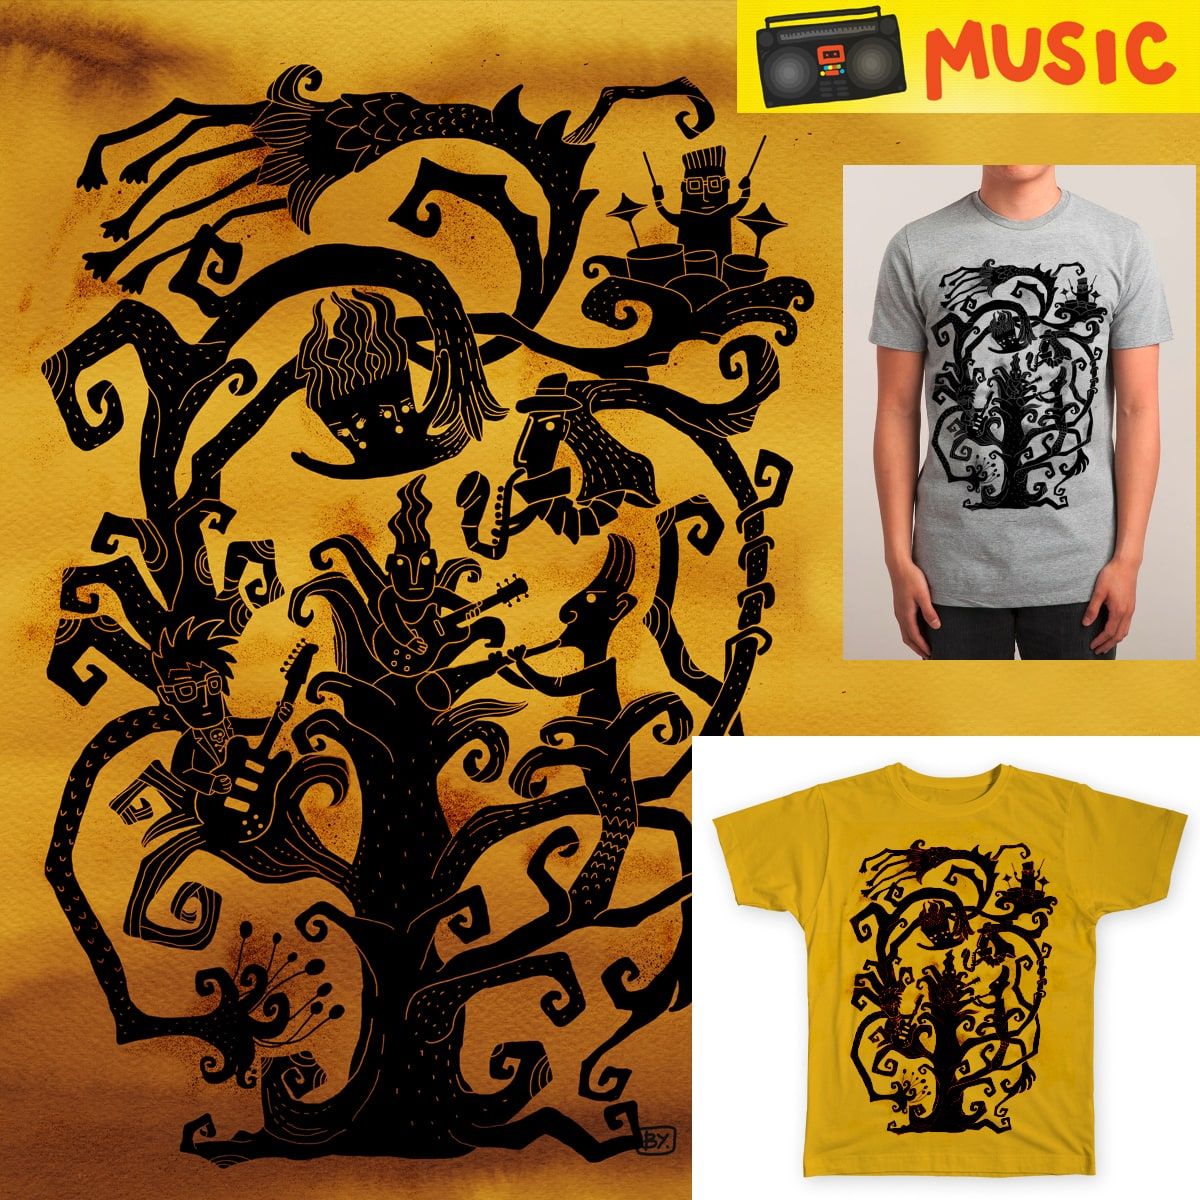 Jam Session Tree by baba yagada on Threadless